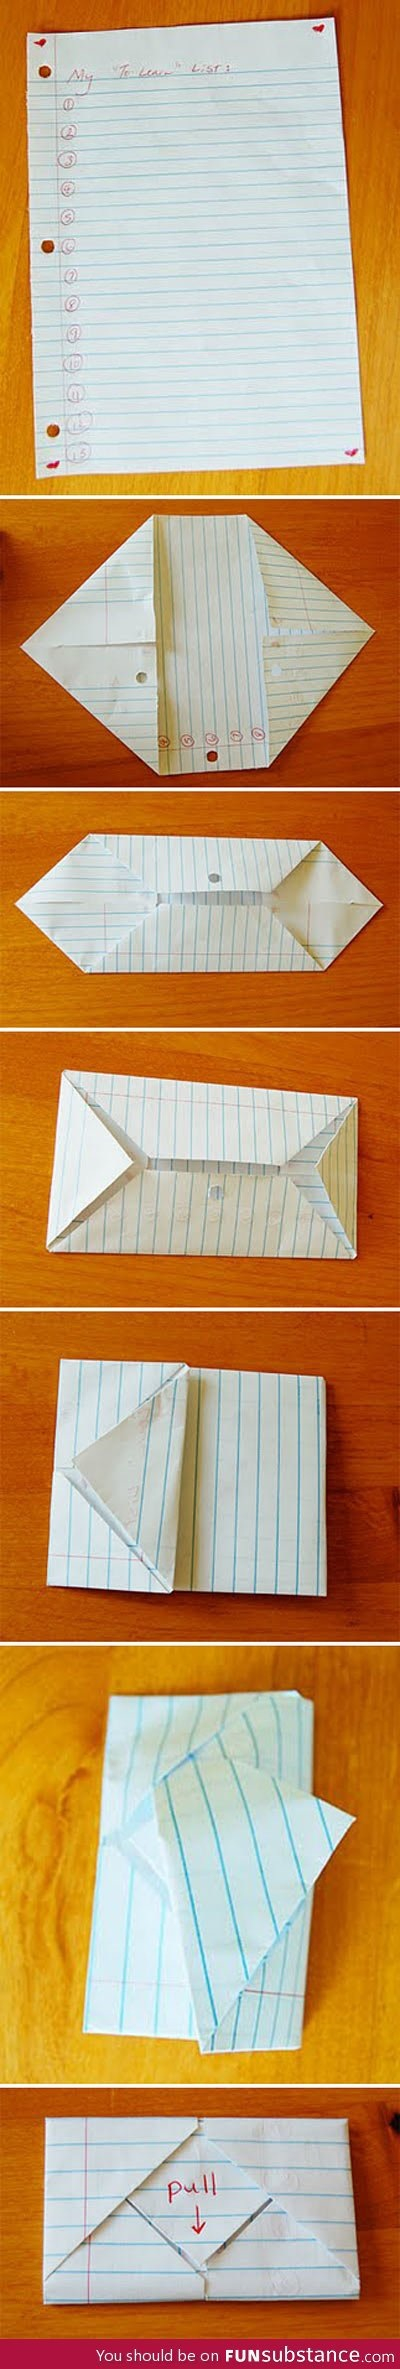 easy crafts ideas to make: origami with rectangular paper | 2369x400